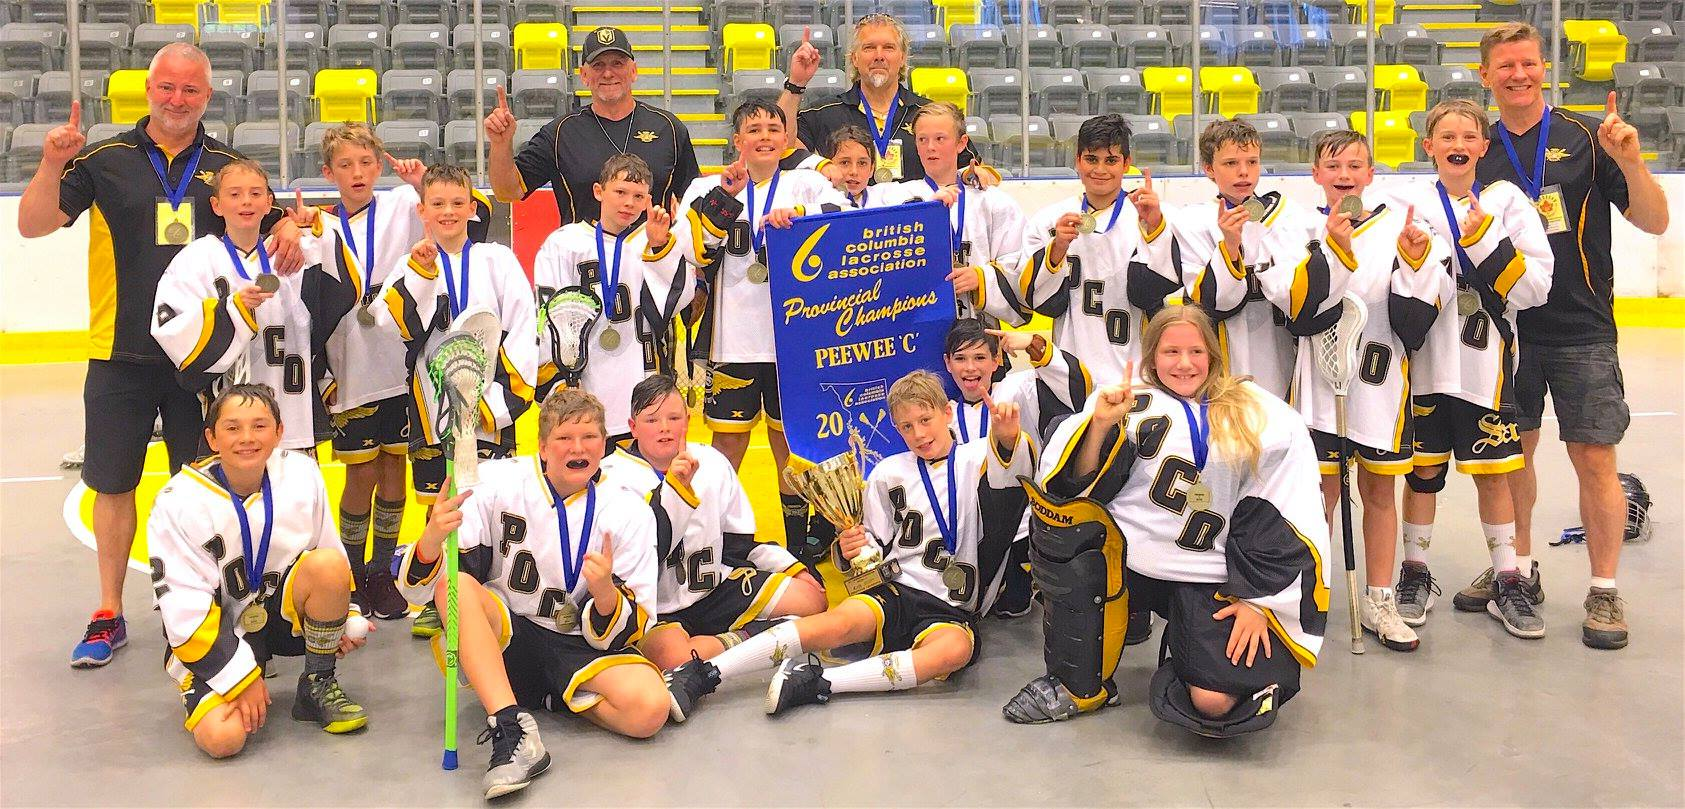 Pee Wee Saints Win BC Provincial Box Lacrosse Title